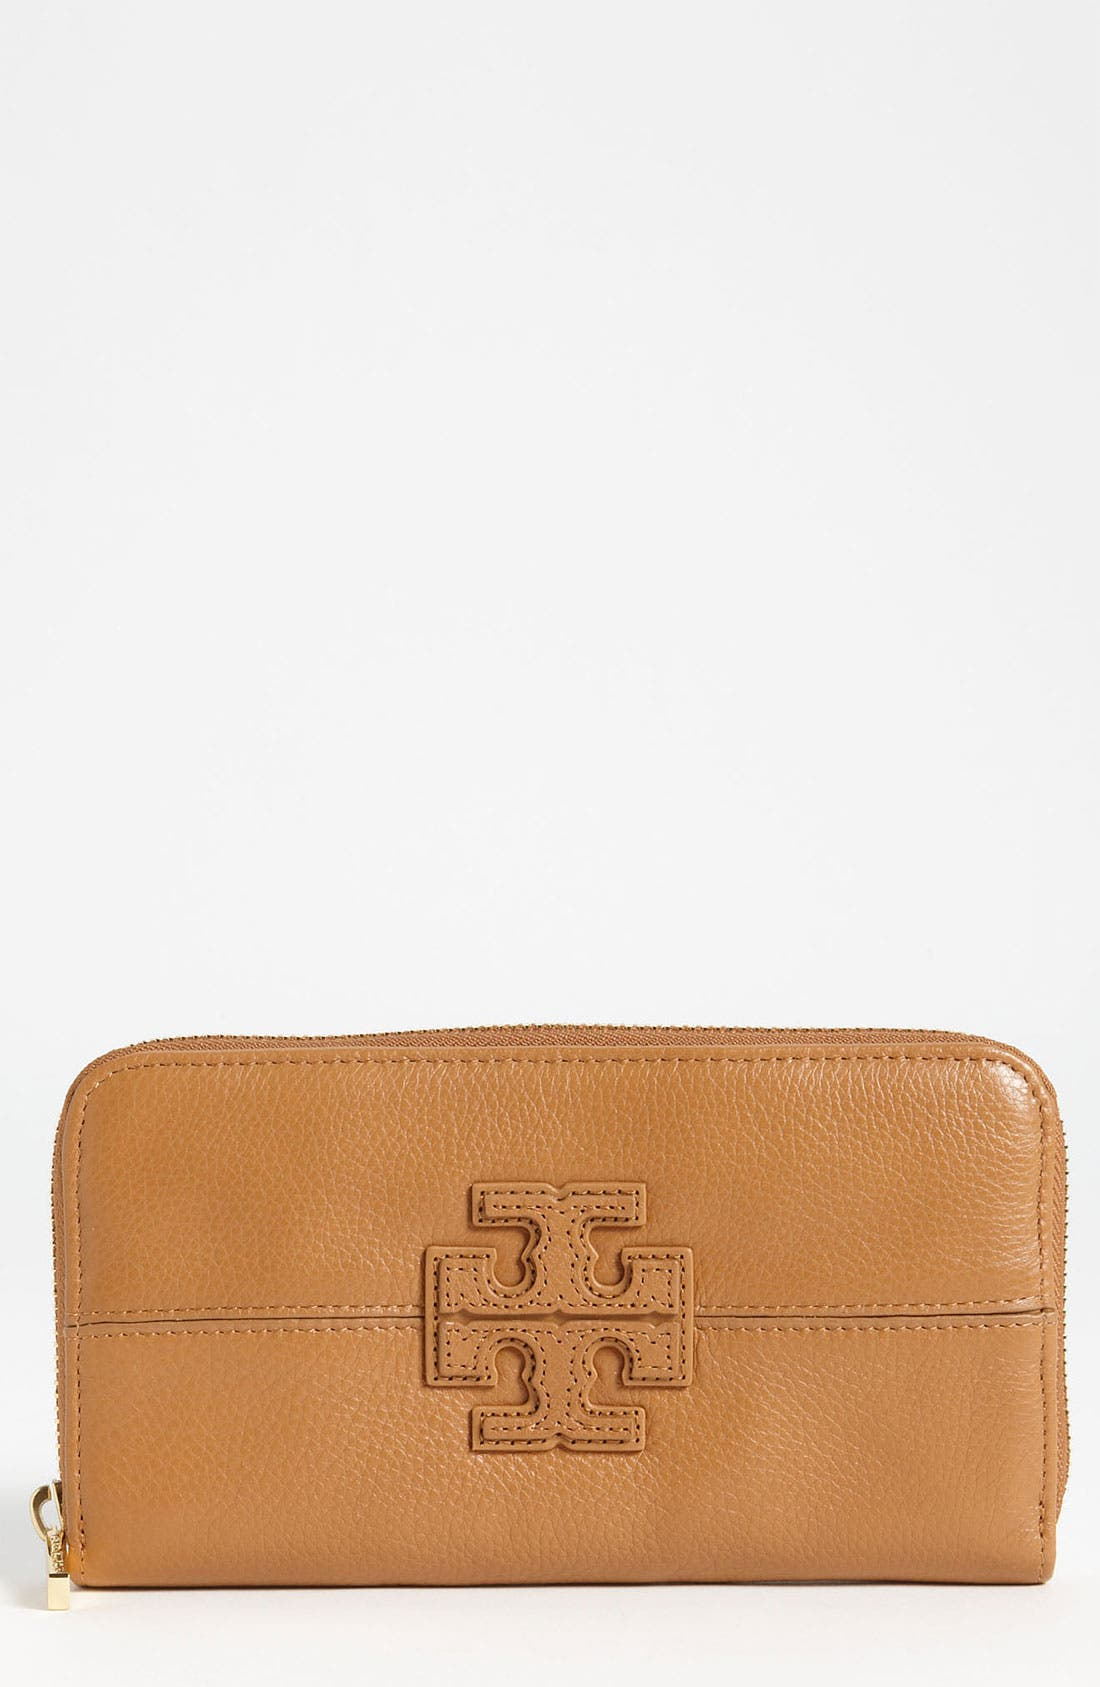 Alternate Image 1 Selected - Tory Burch 'Stacked T' Continental Wallet